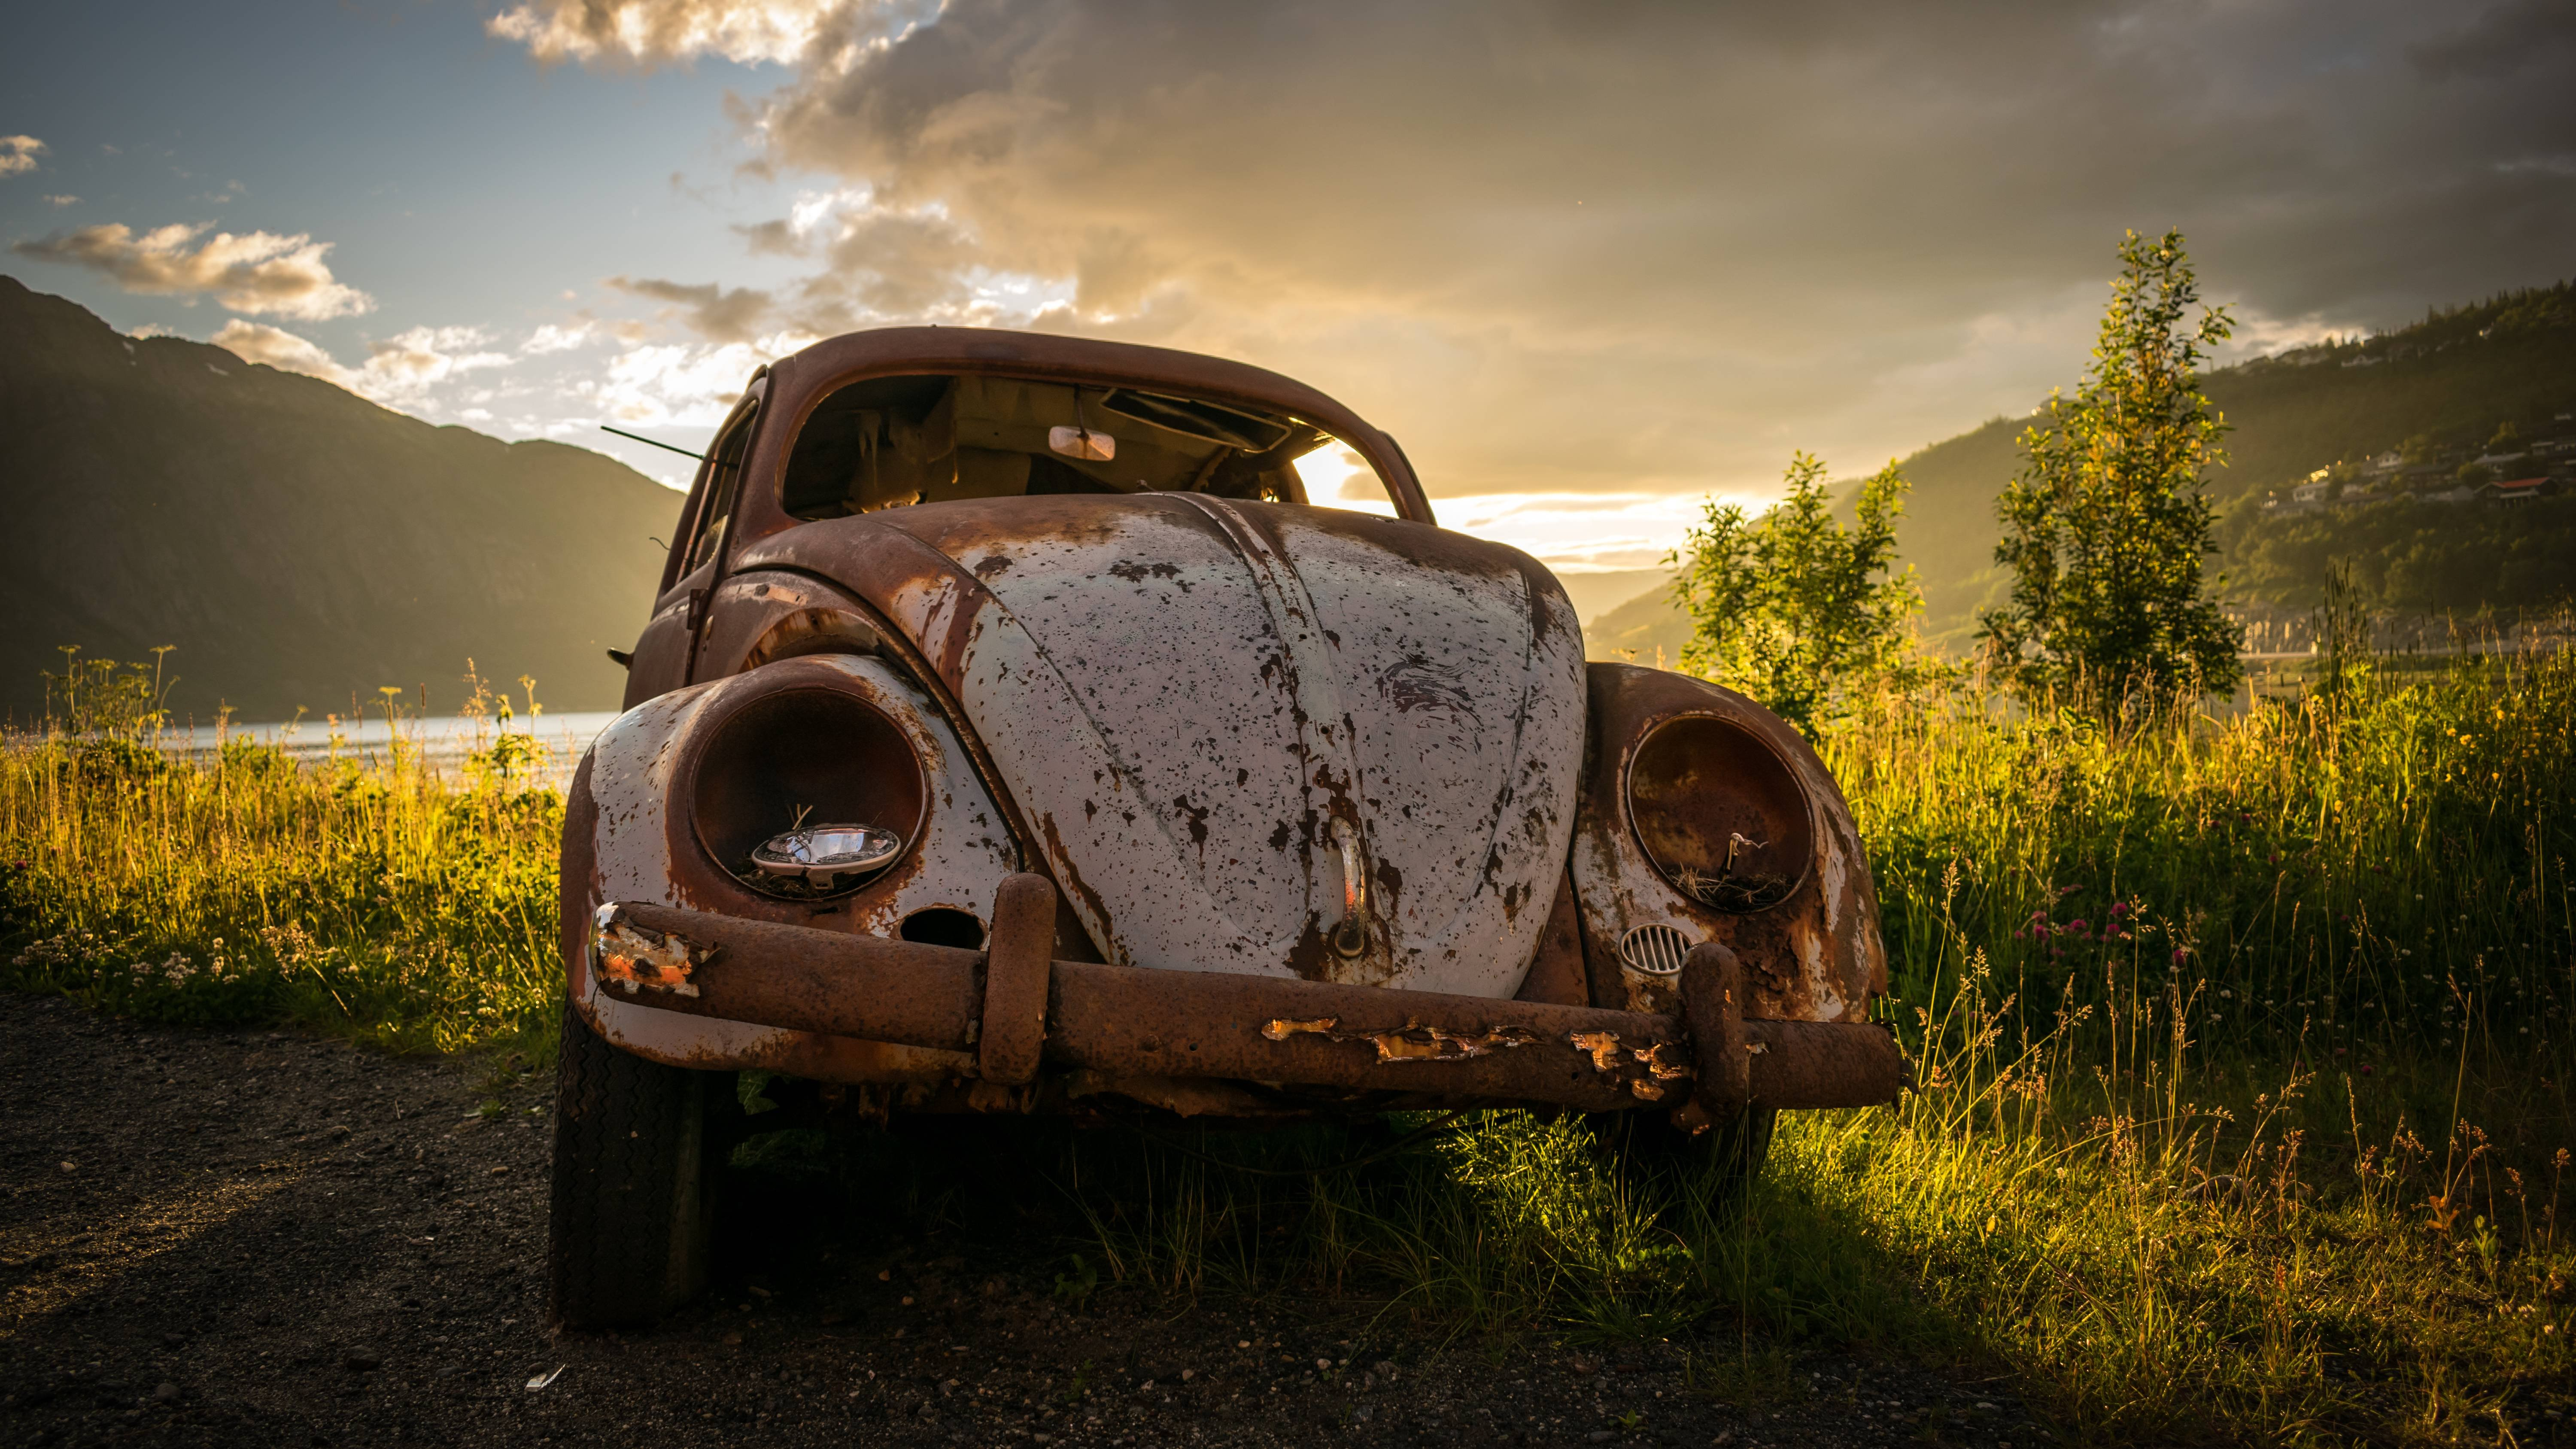 Abandoned VW Beetle wallpaper